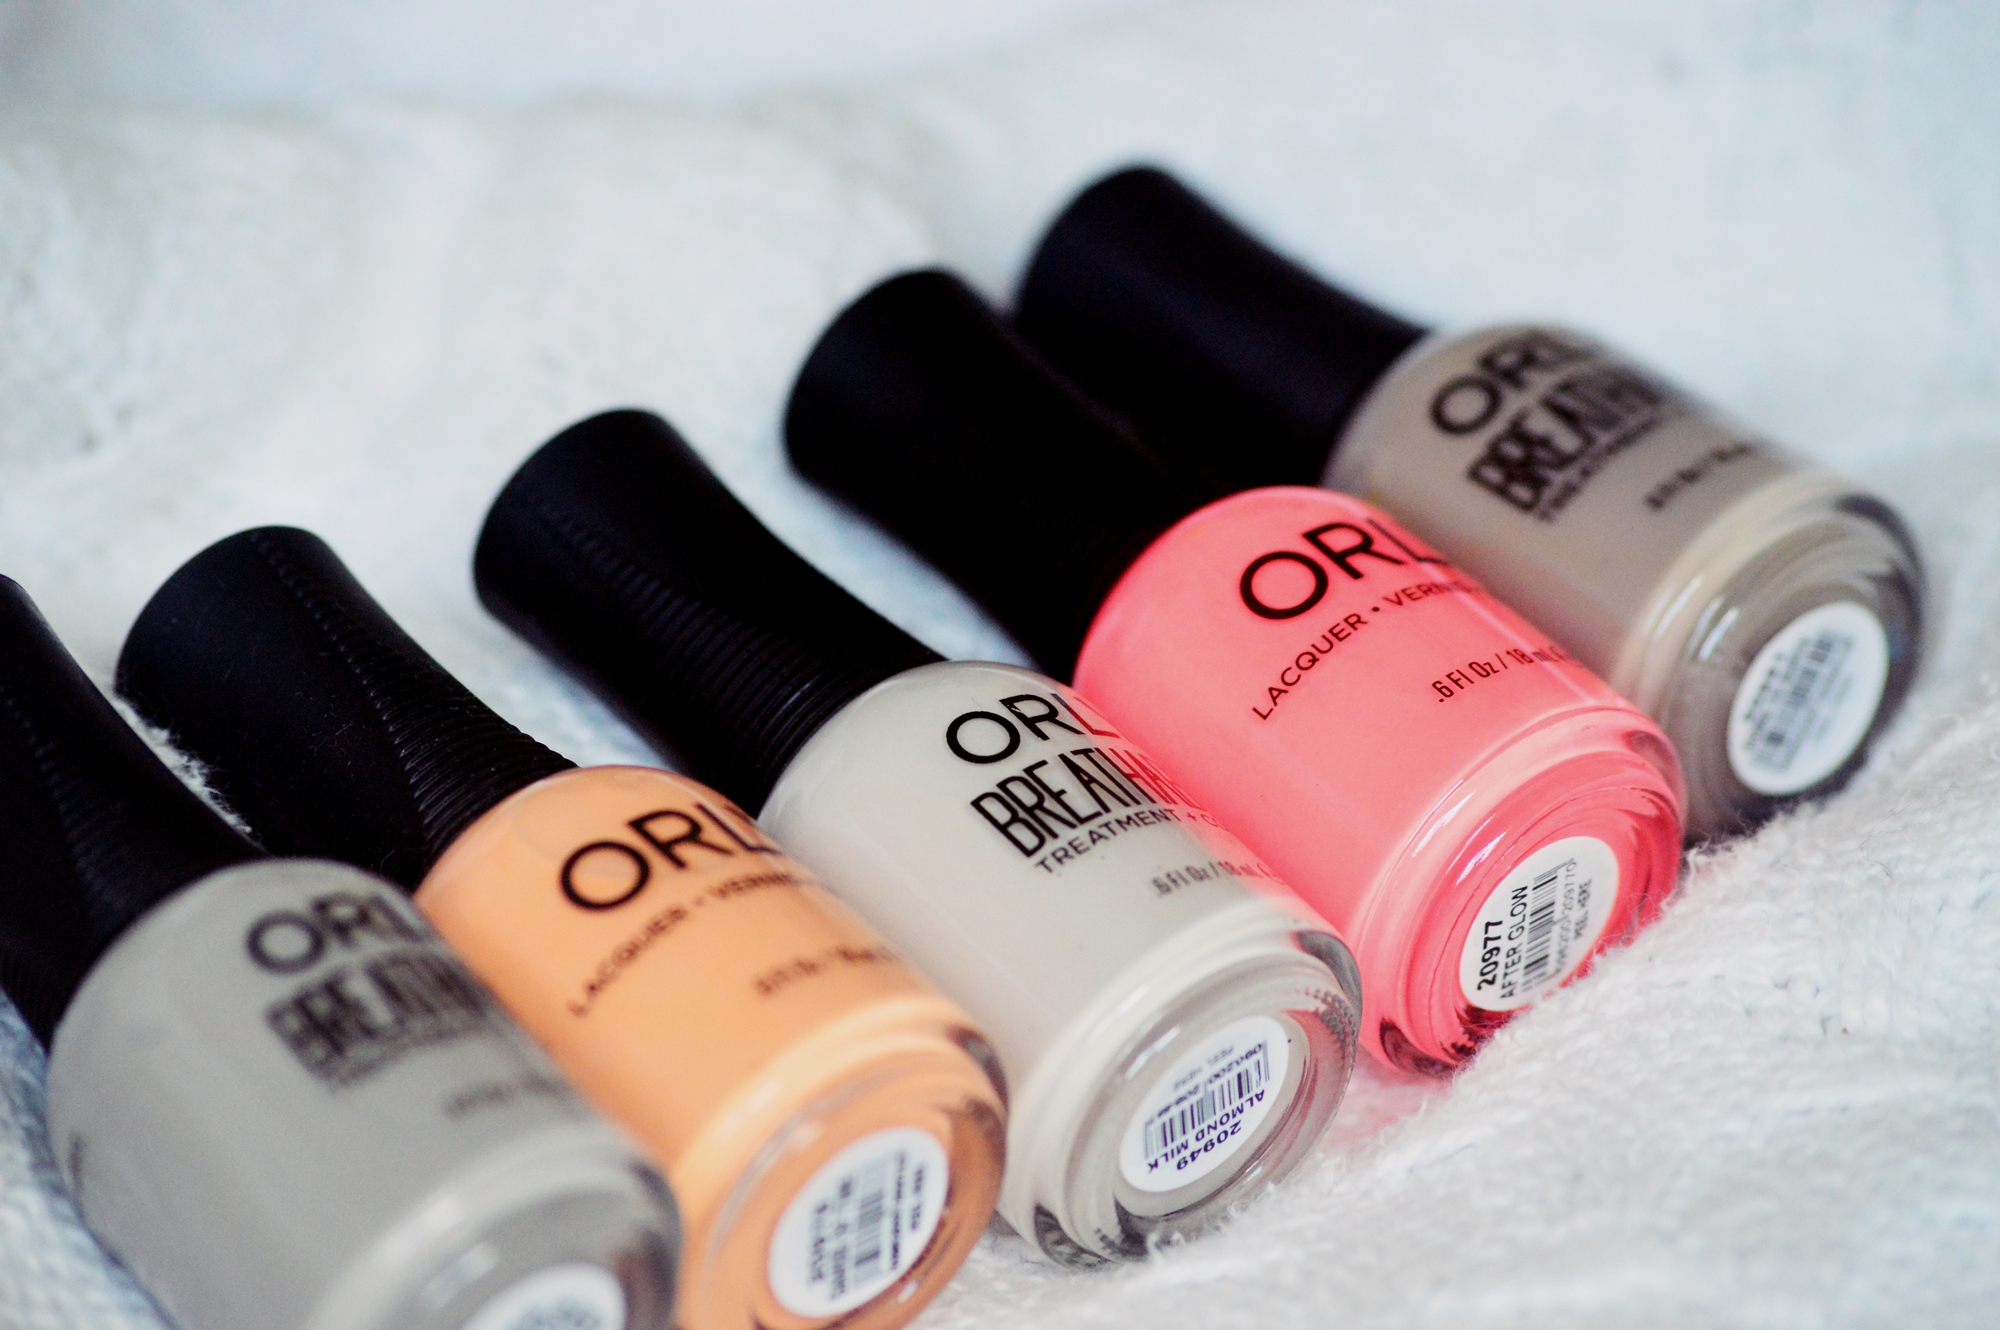 ORLY – My FAVOURITE nail polish brand of all time {REVIEW}